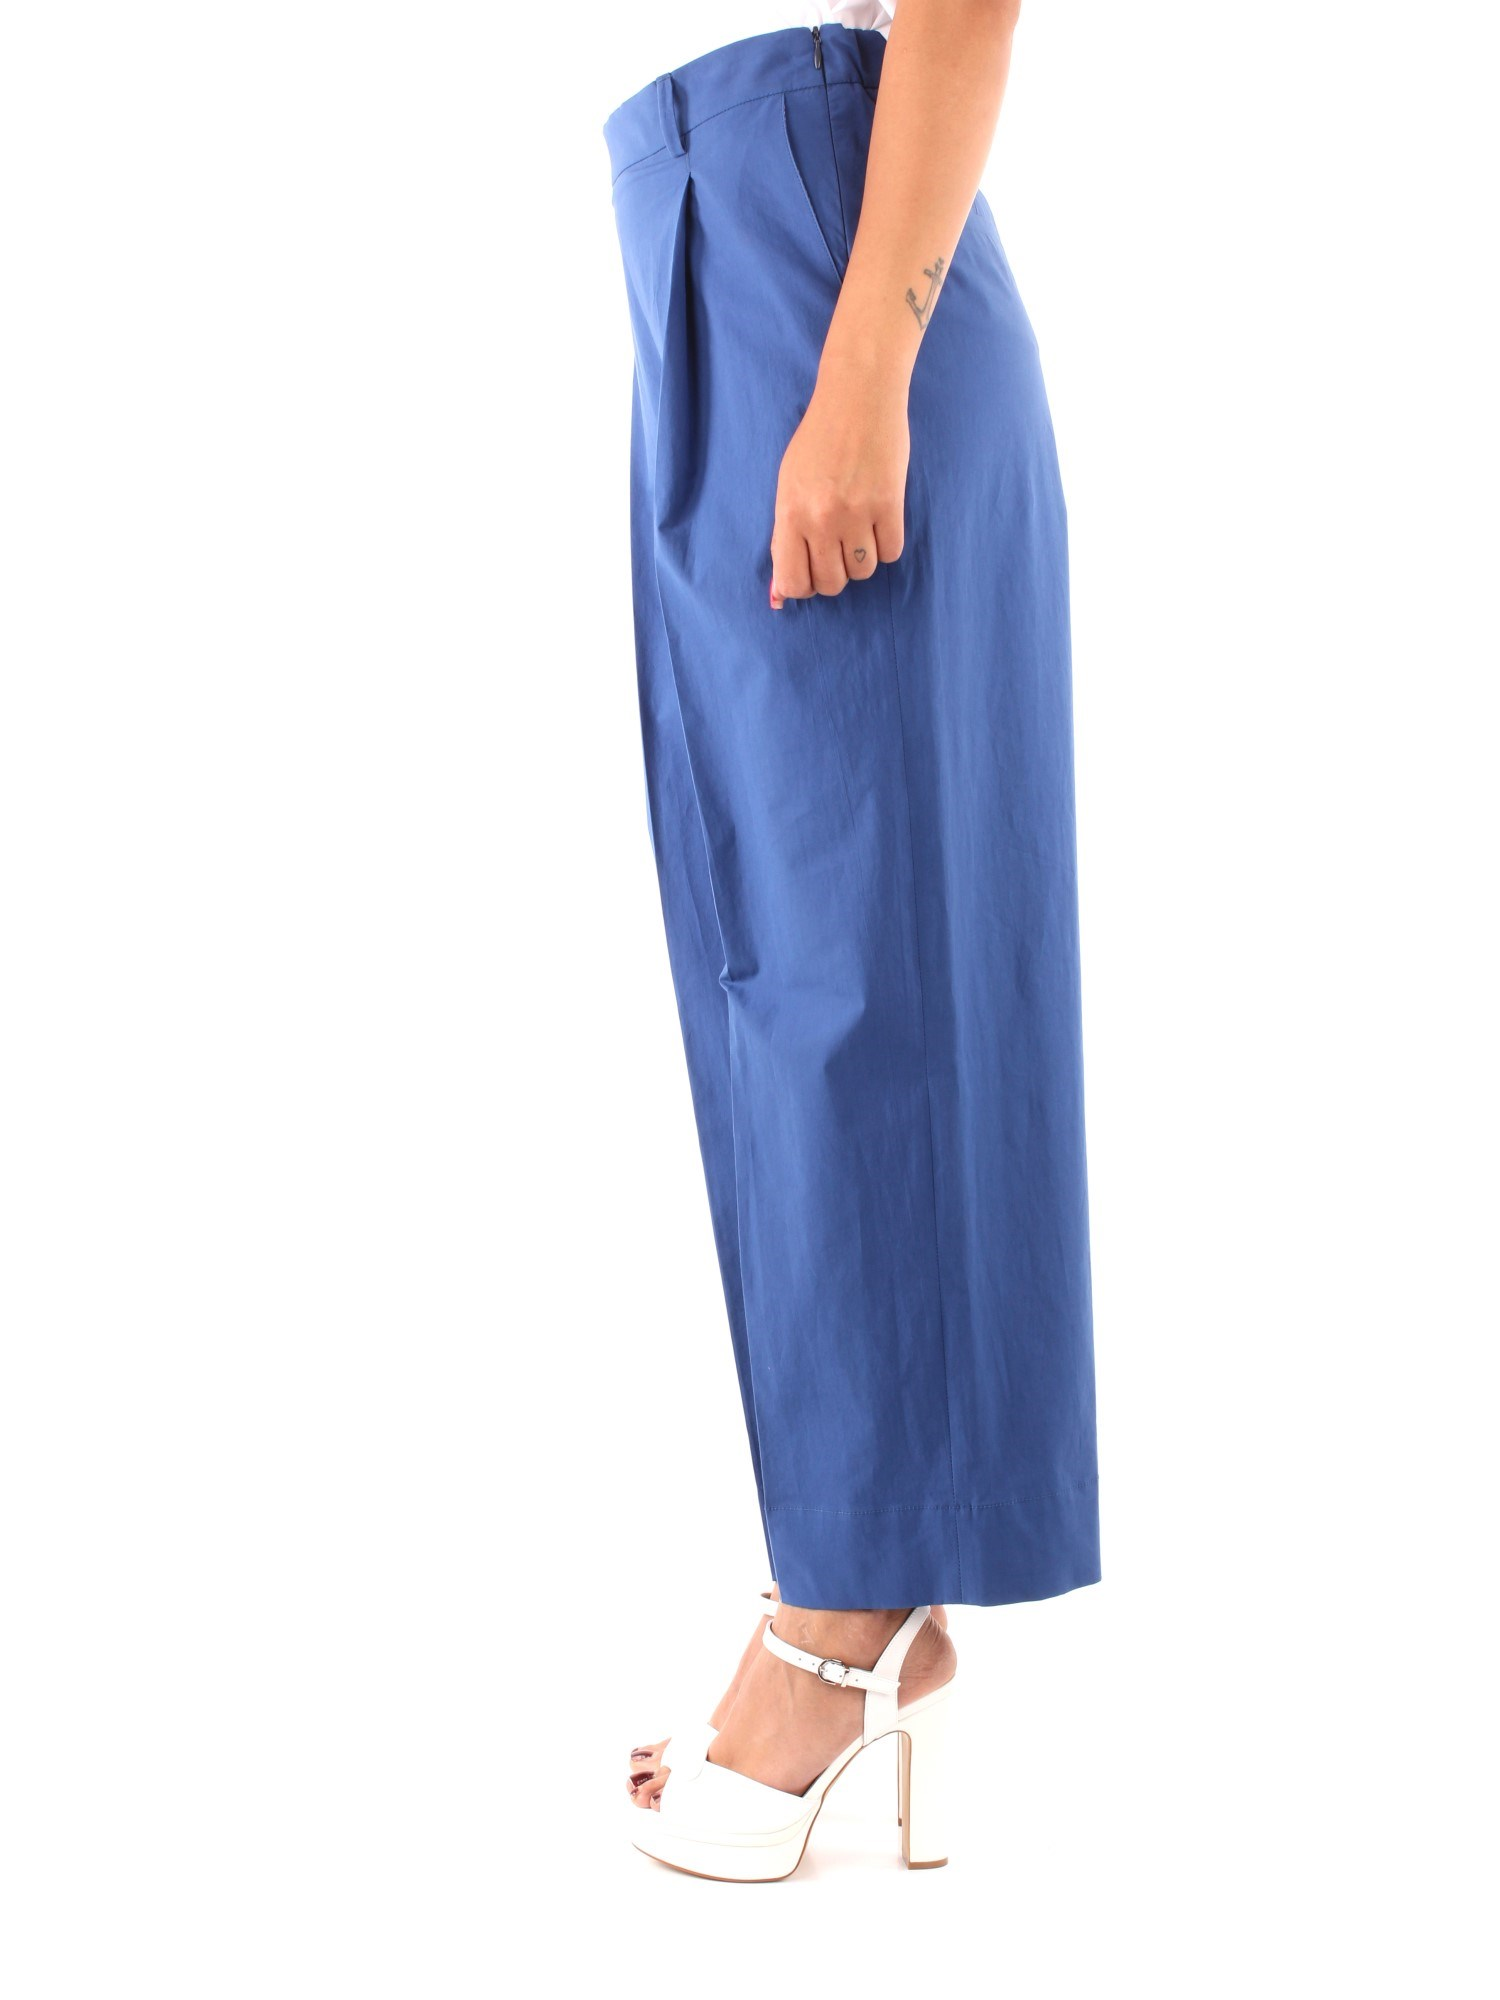 Niu' Clothing Woman Chino BLUE PE19201T07